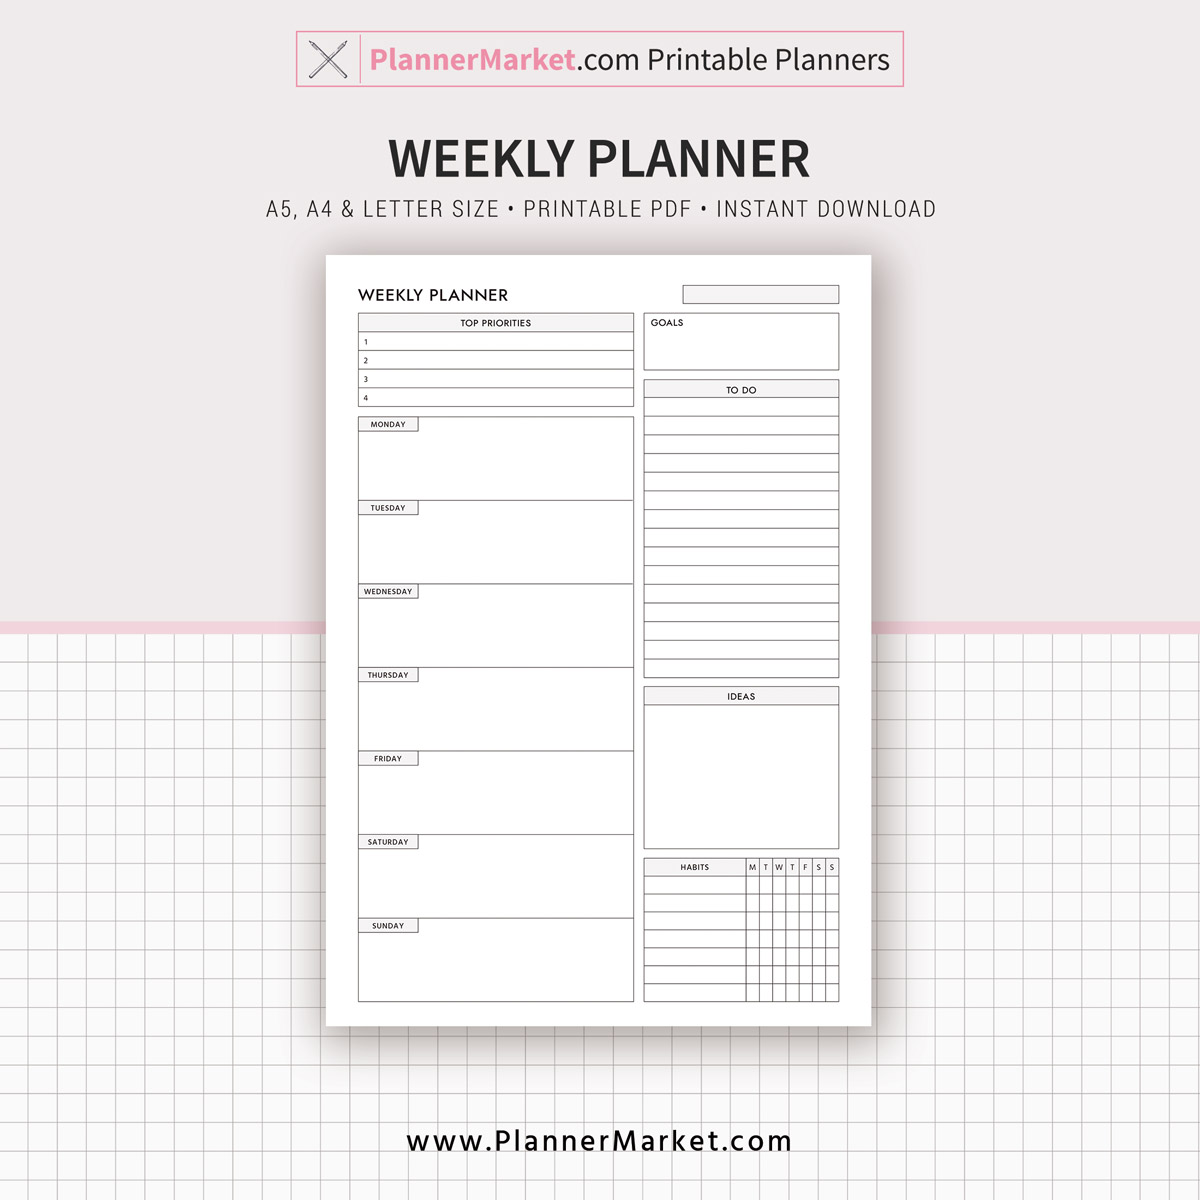 Daily Weekly Monthly Planner Printable Planner Filofax A5 Inserts A5 A4 Letter Size Planner Pages Refill Planner Inserts Plannermarket Com Best Selling Printable Templates For Everyone